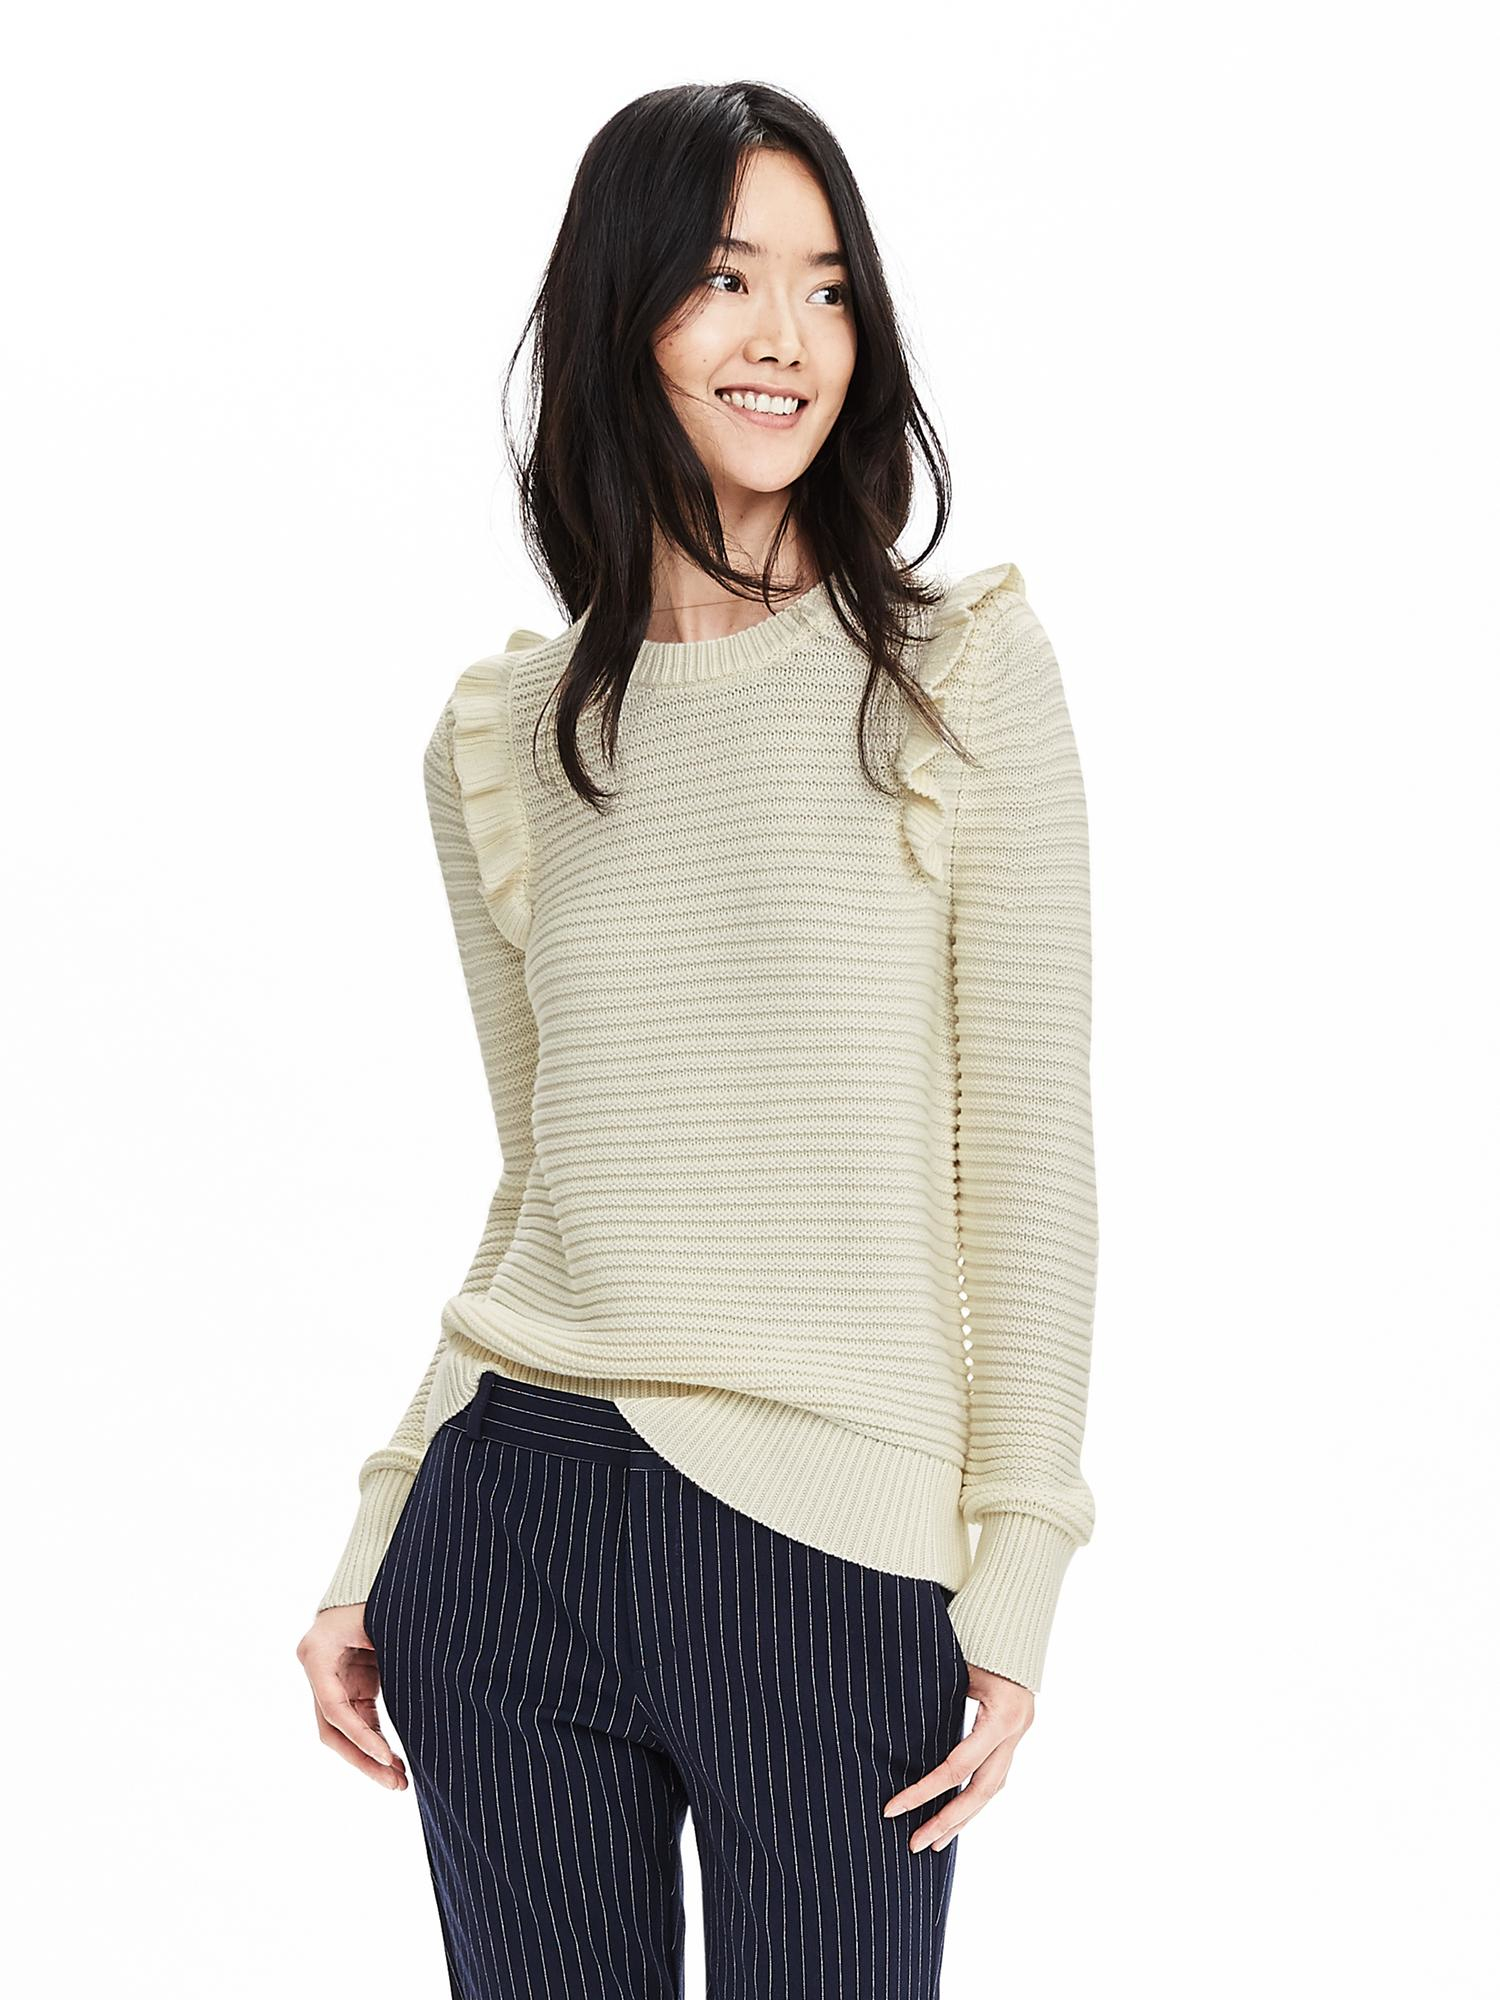 Elevate any wardrobe with women's sweaters from Banana Republic Factory. Browse an incredible selection of the latest sweaters for women and find a great fit for any individual style. Create your next great look today with stylish women's sweaters from Banana Republic Factory. Find versatile sweaters for women that will complement your unique personality.